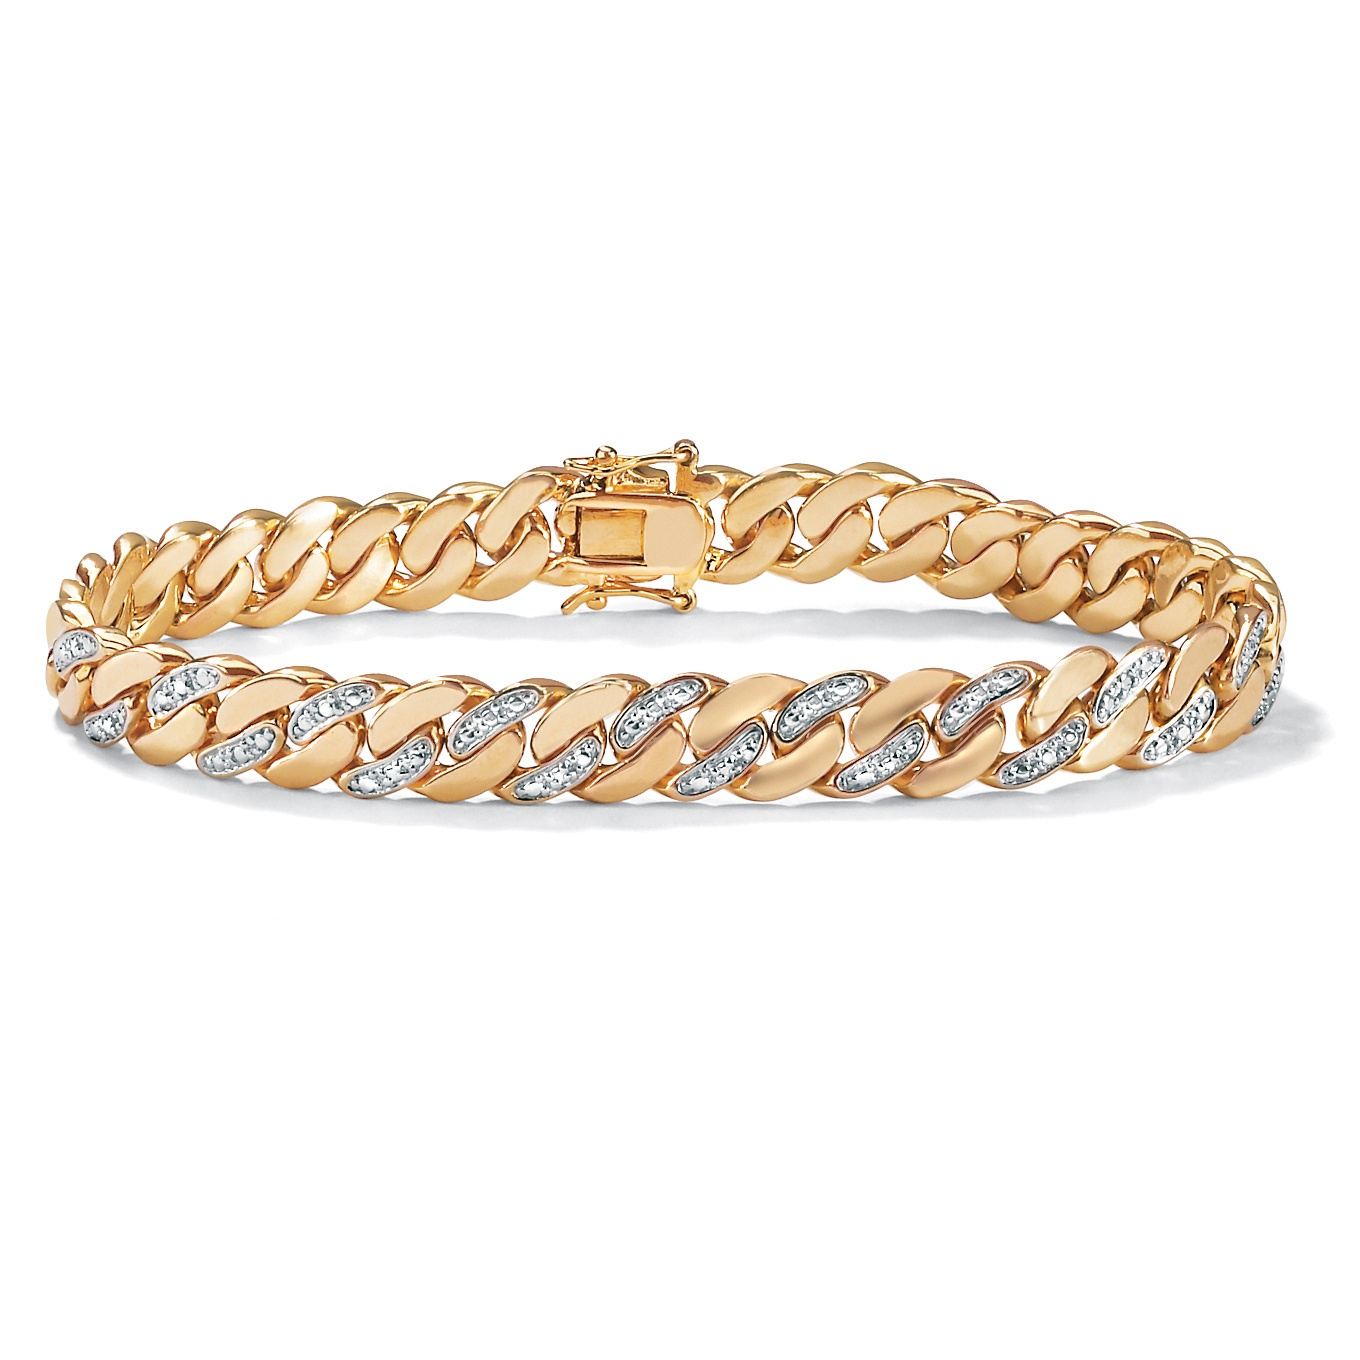 "Men's Diamond Accent Curb-Link Bracelet 18k Yellow Gold-Plated 9.5"" (9mm) by PalmBeach Jewelry"